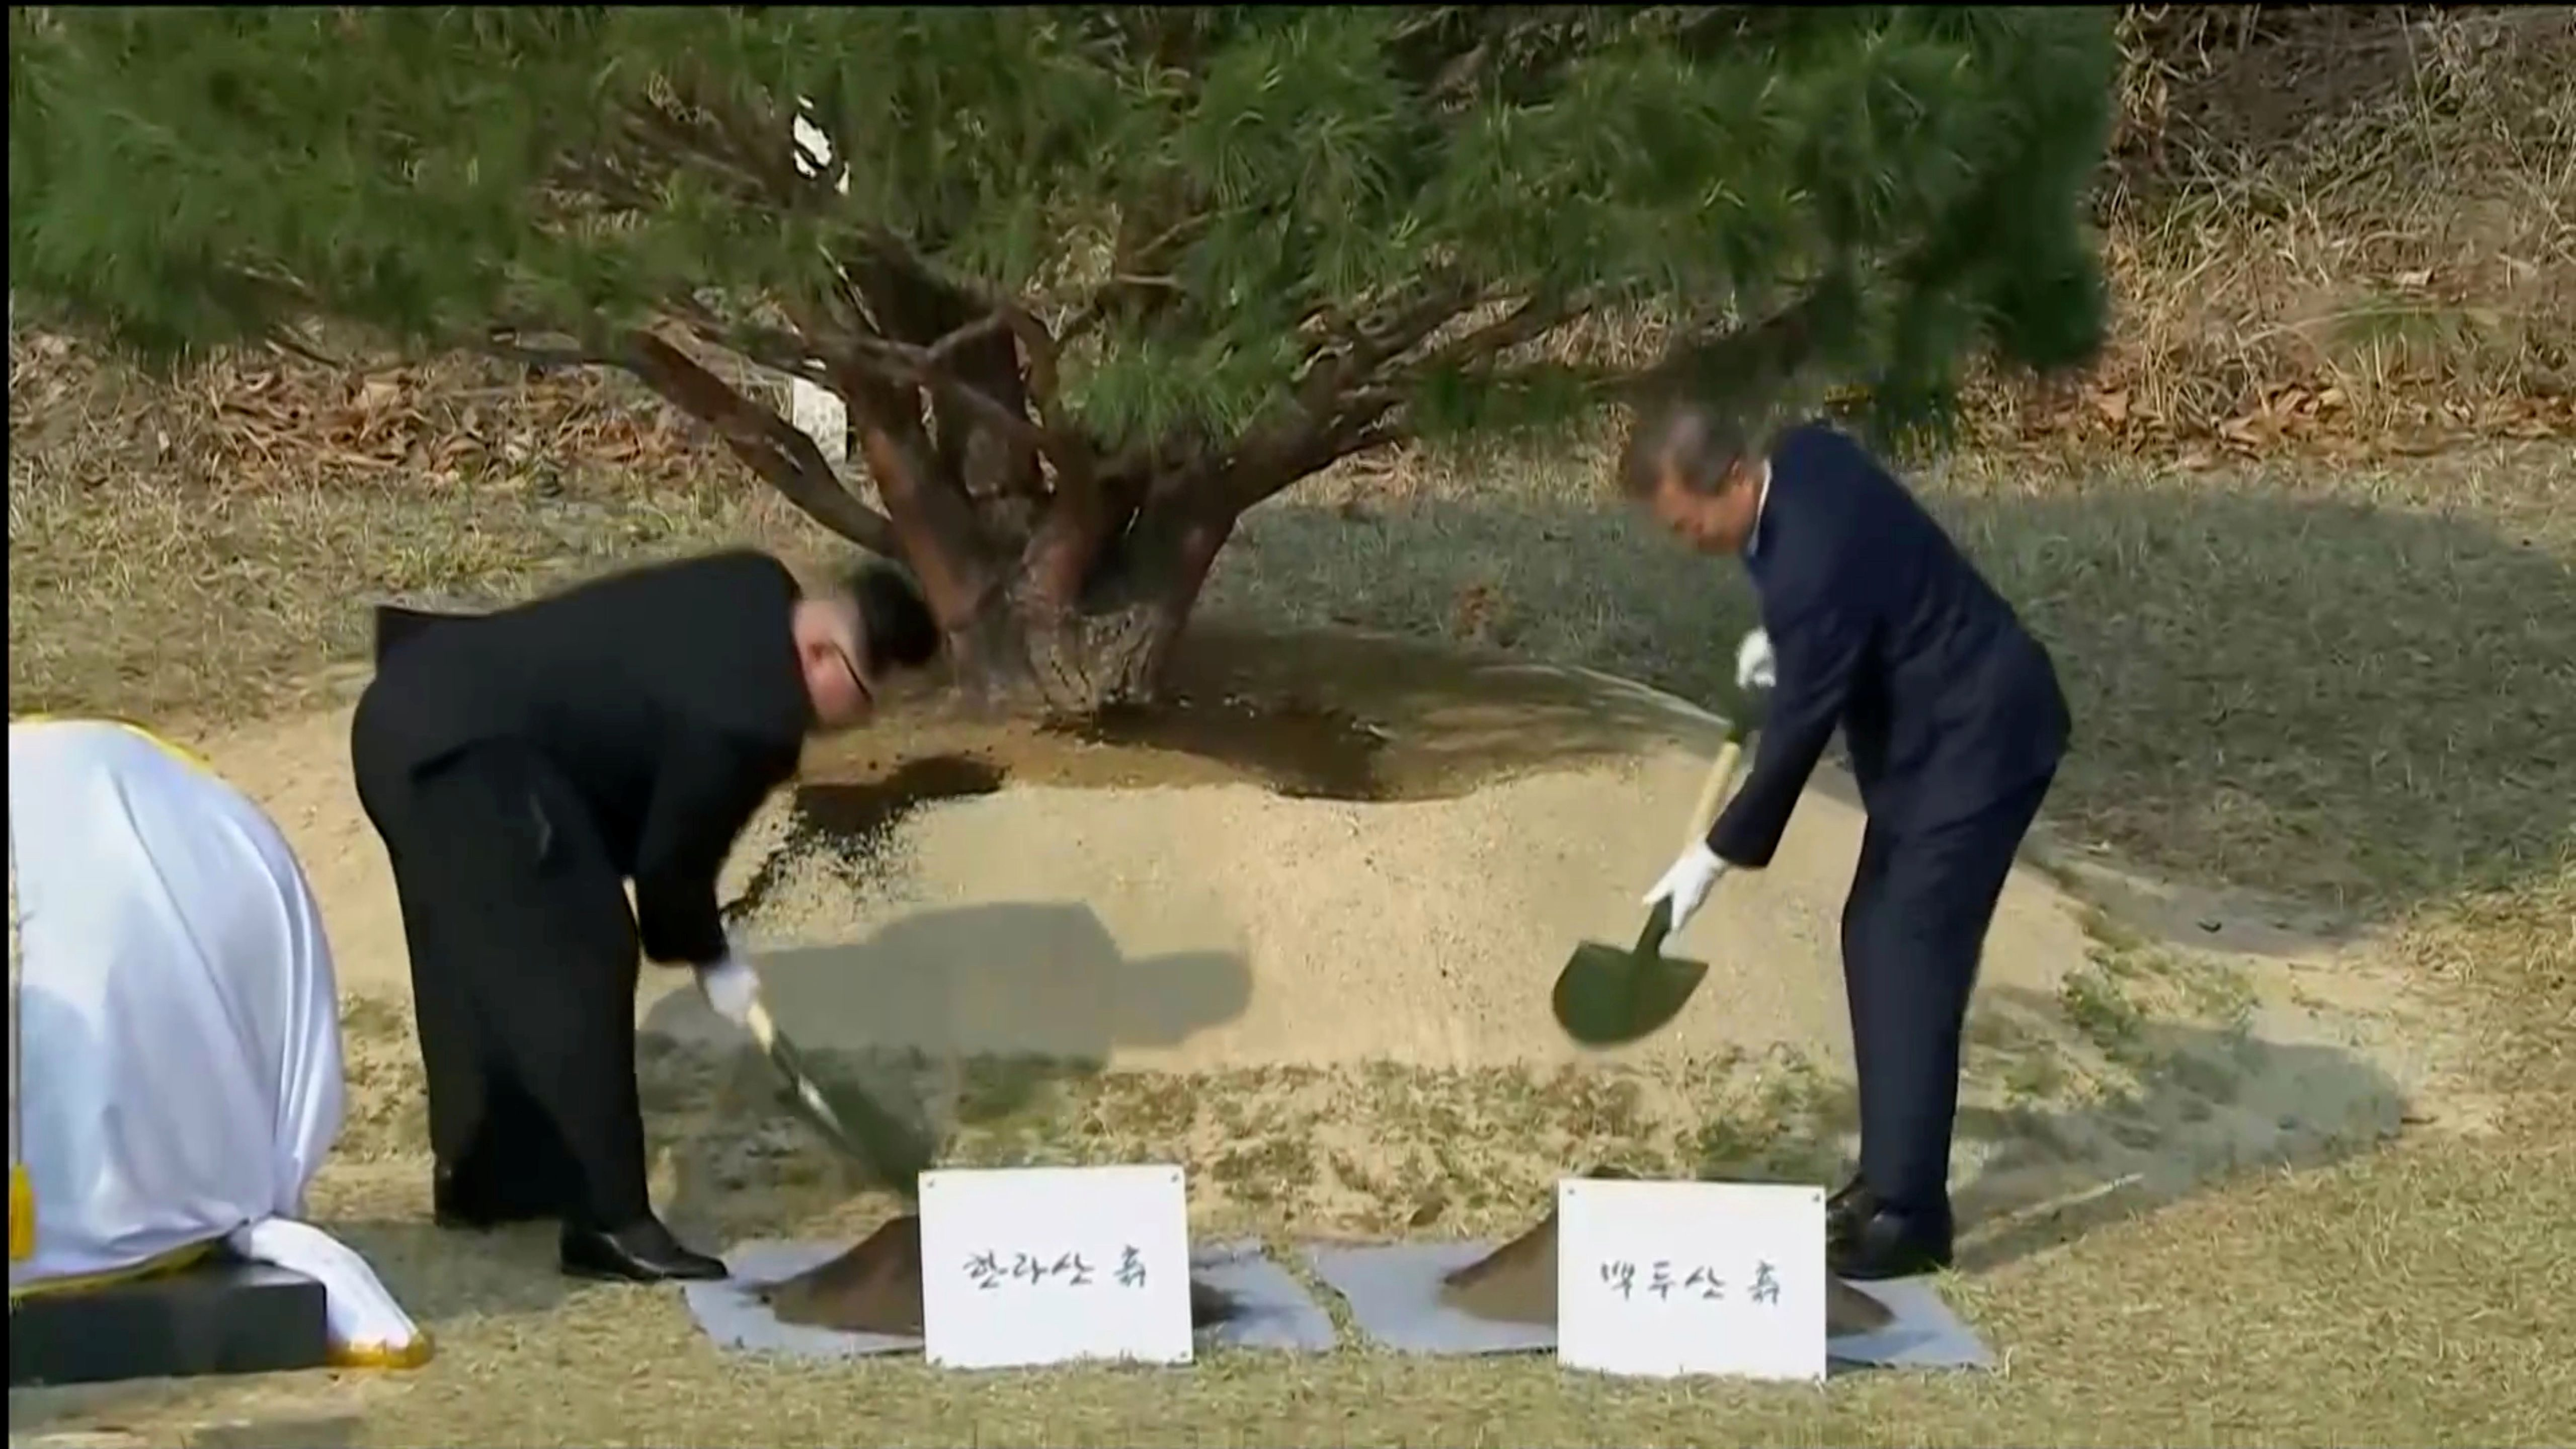 South Korean President Moon Jae-in and North Korean leader Kim Jong Un attend tree planting ceremony during the inter-Korean summit at the truce village of Panmunjom, in this still frame taken from video, South Korea April 27, 2018. Host Broadcaster via REUTERS TV  ATTENTION EDITORS - THIS IMAGE HAS BEEN PROVIDED BY A THIRD PARTY. NO RESALES. NO ARCHIVES. SOUTH KOREA OUT. - RC118EEE7730